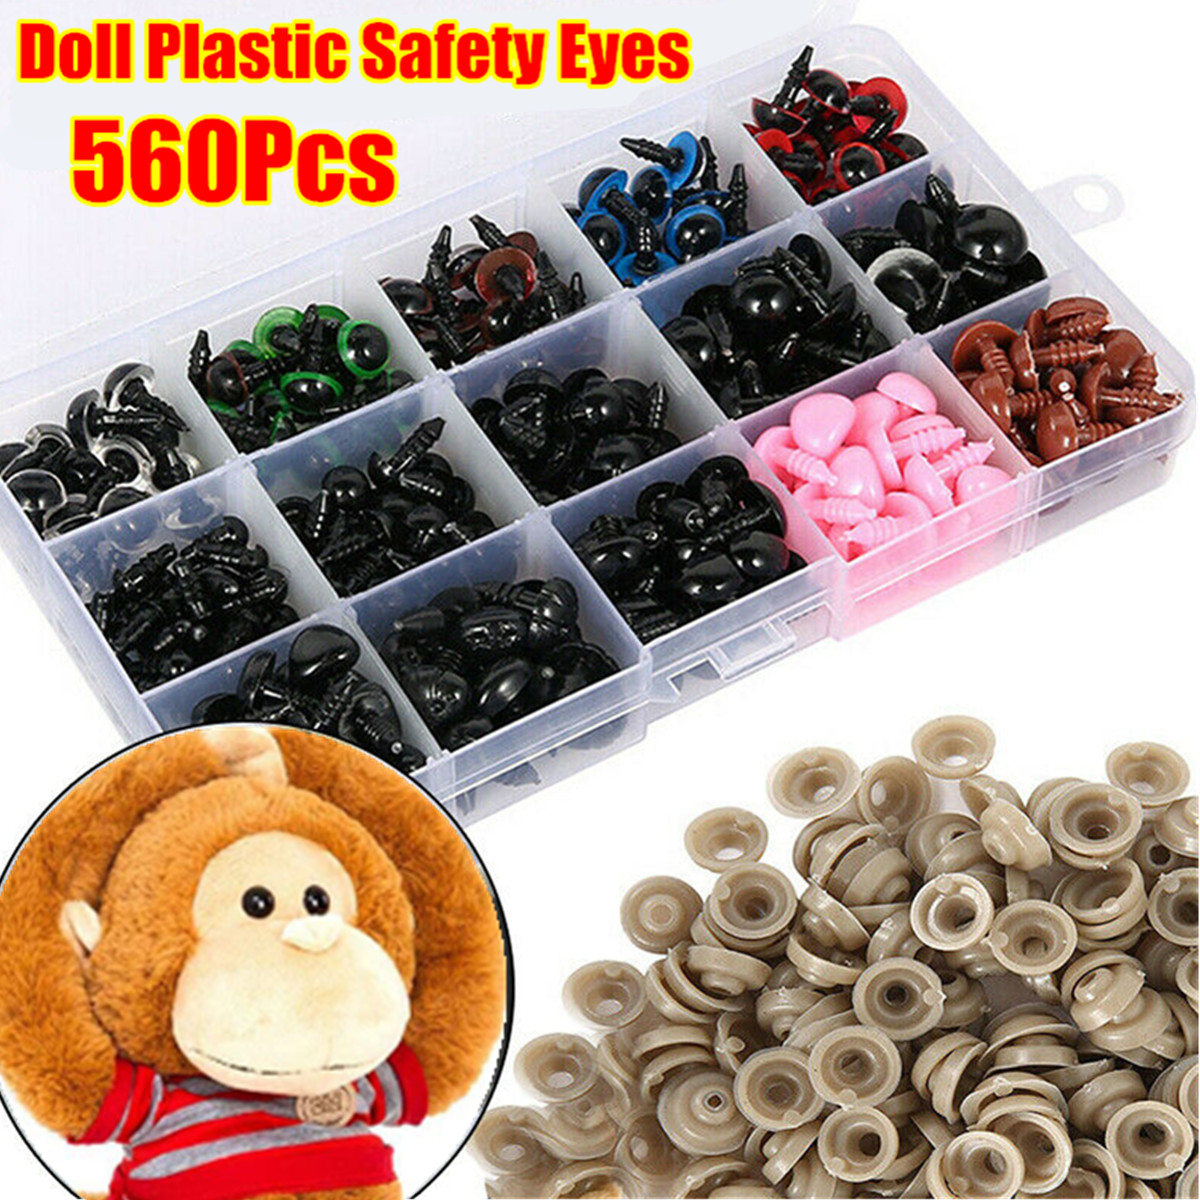 90pcs Plastic Safety Eyes Noses For DIY Teddy Bear TOY Doll Animal Crafts Puppet